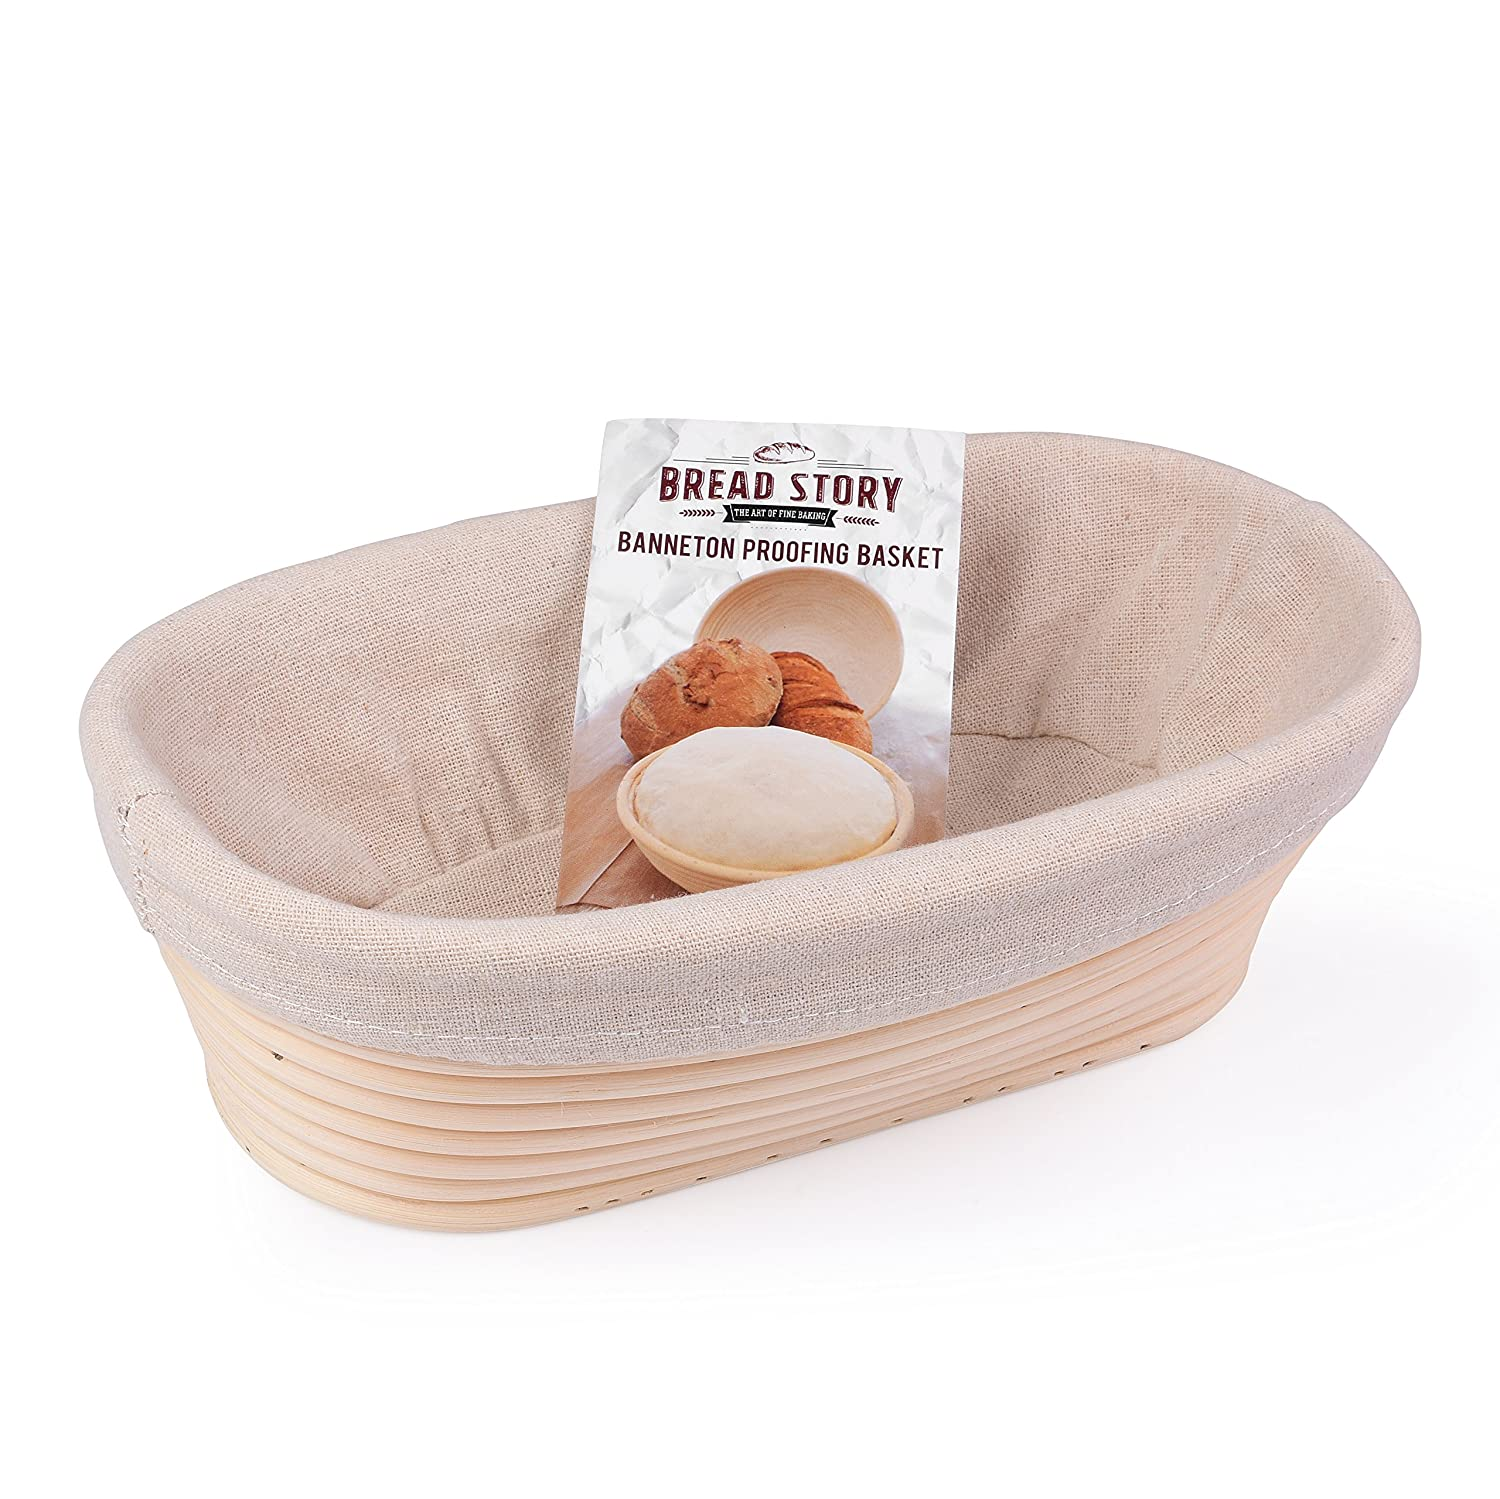 (10x6 inch) Oval Proofing Basket Set by Bread Story– Oval Banneton/Brotform Handmade Unbleached Natural Cane Bread Baking Kit with Cloth Liner + FREE Bread Baking Ebook, Course Discount, Coupon 91Ch71xOMZL